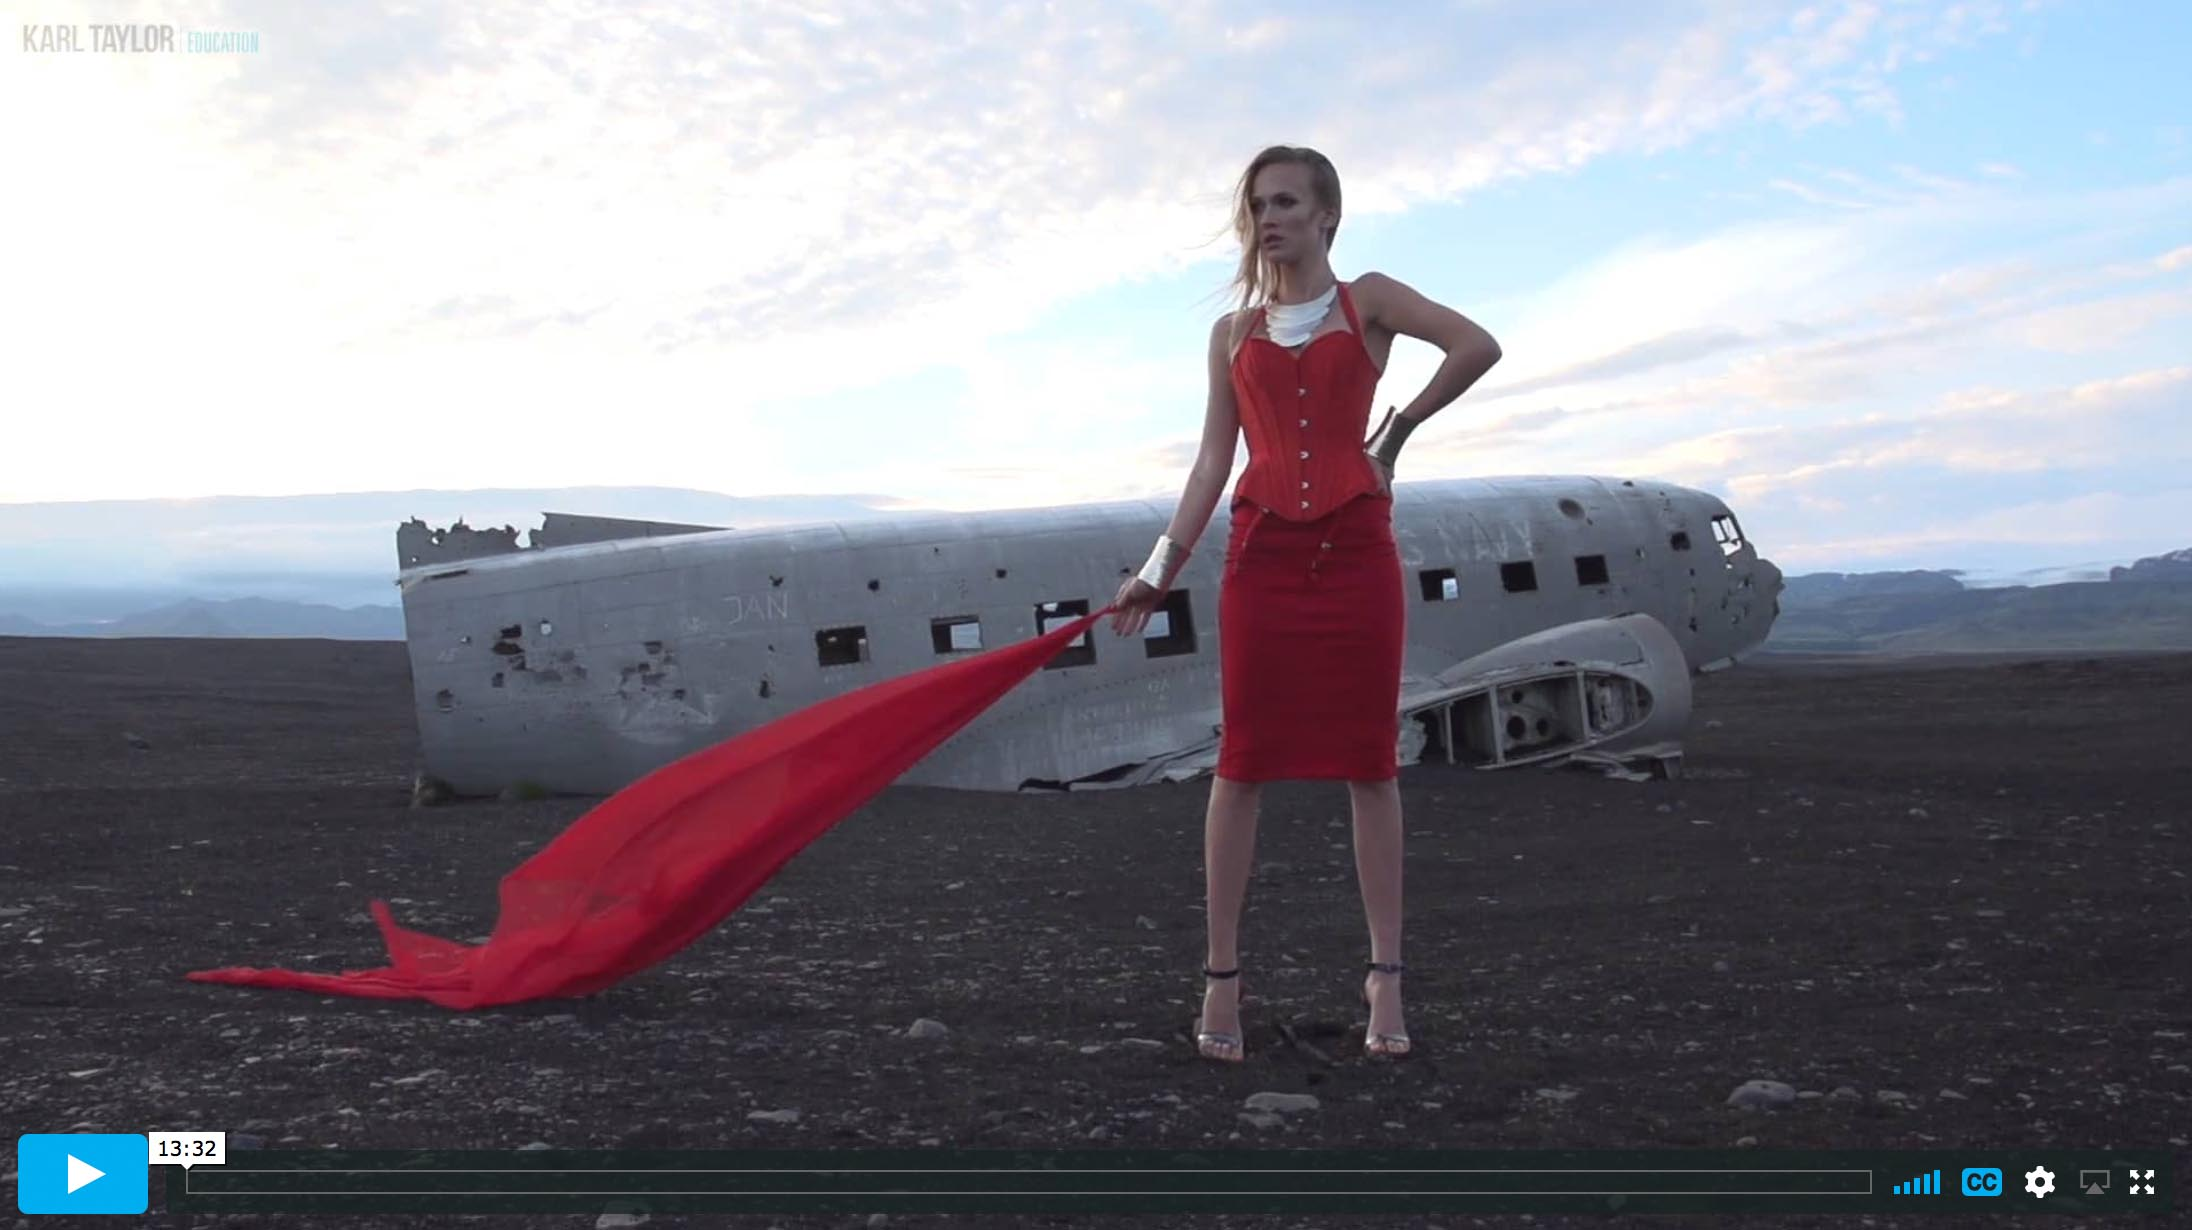 Fashion shoot at the site of the DC3 plane crash